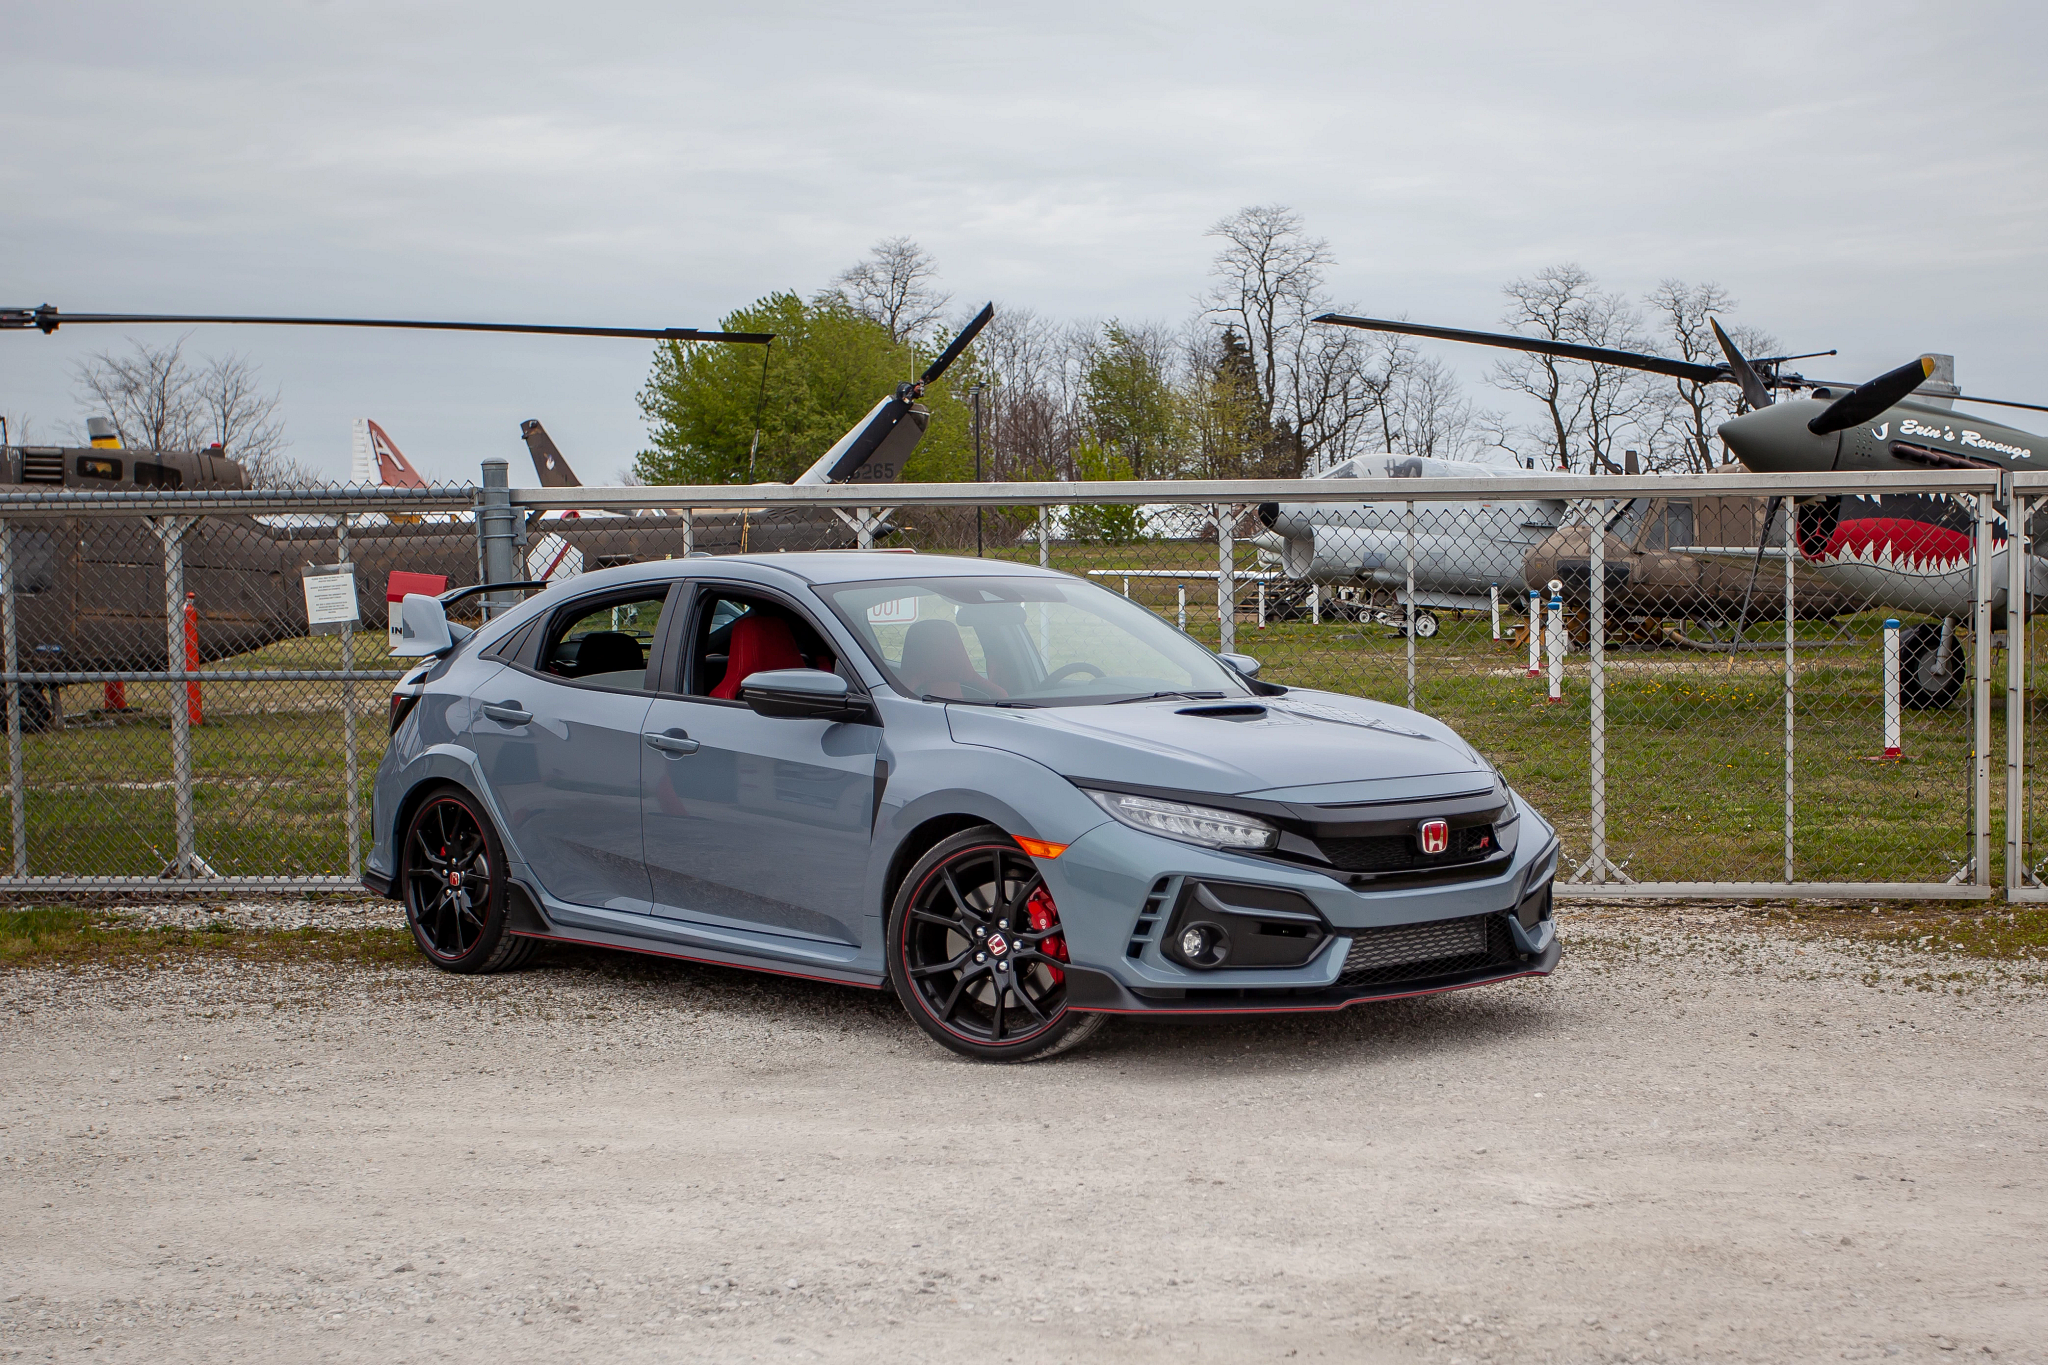 2020 Honda Civic Type R: 5 Pros and 3 Cons